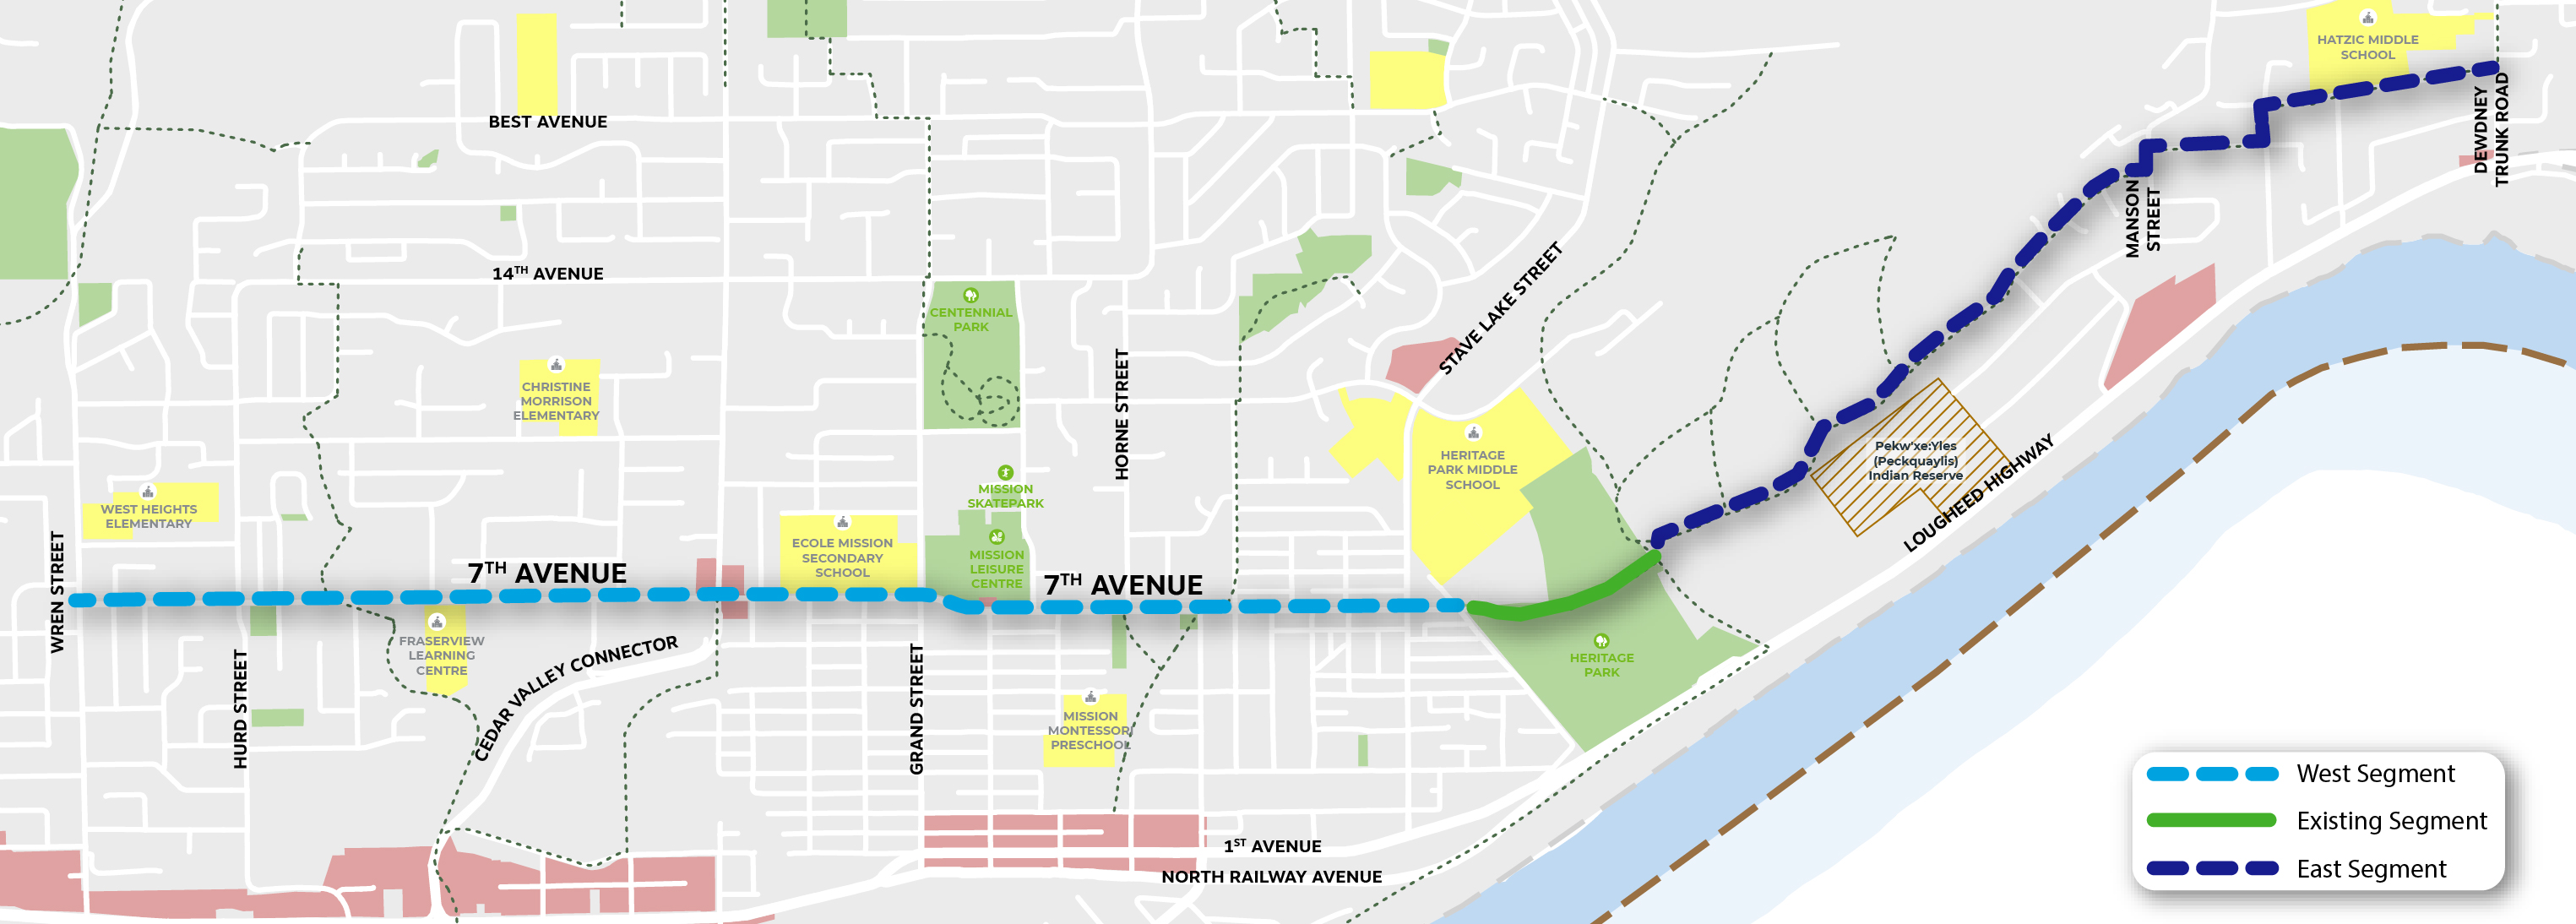 Image of greenway route